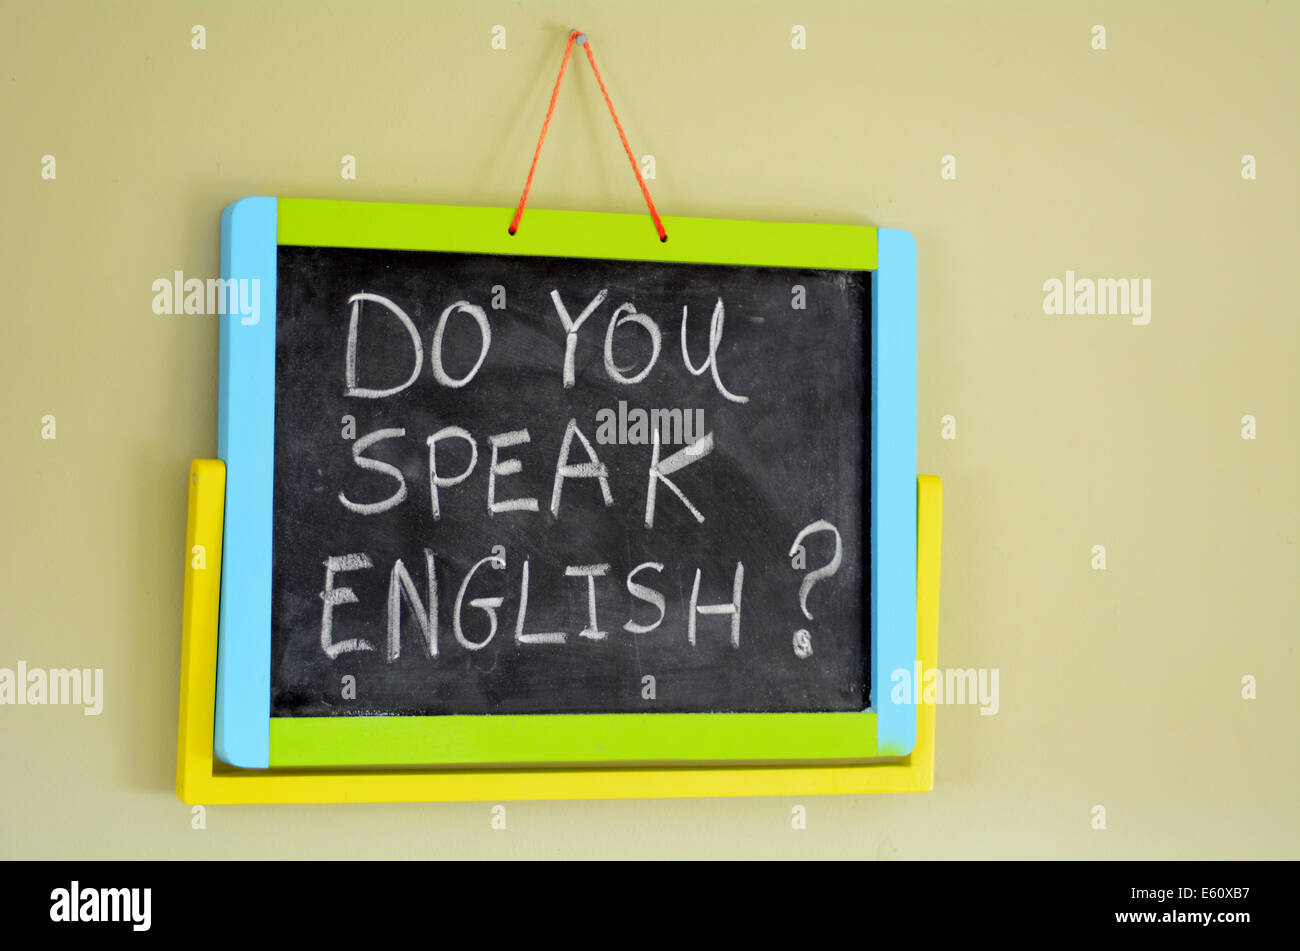 Do you speak english? Handwritten with white chalk on a blackboard.concept photo of learning and teaching English Stock Photo